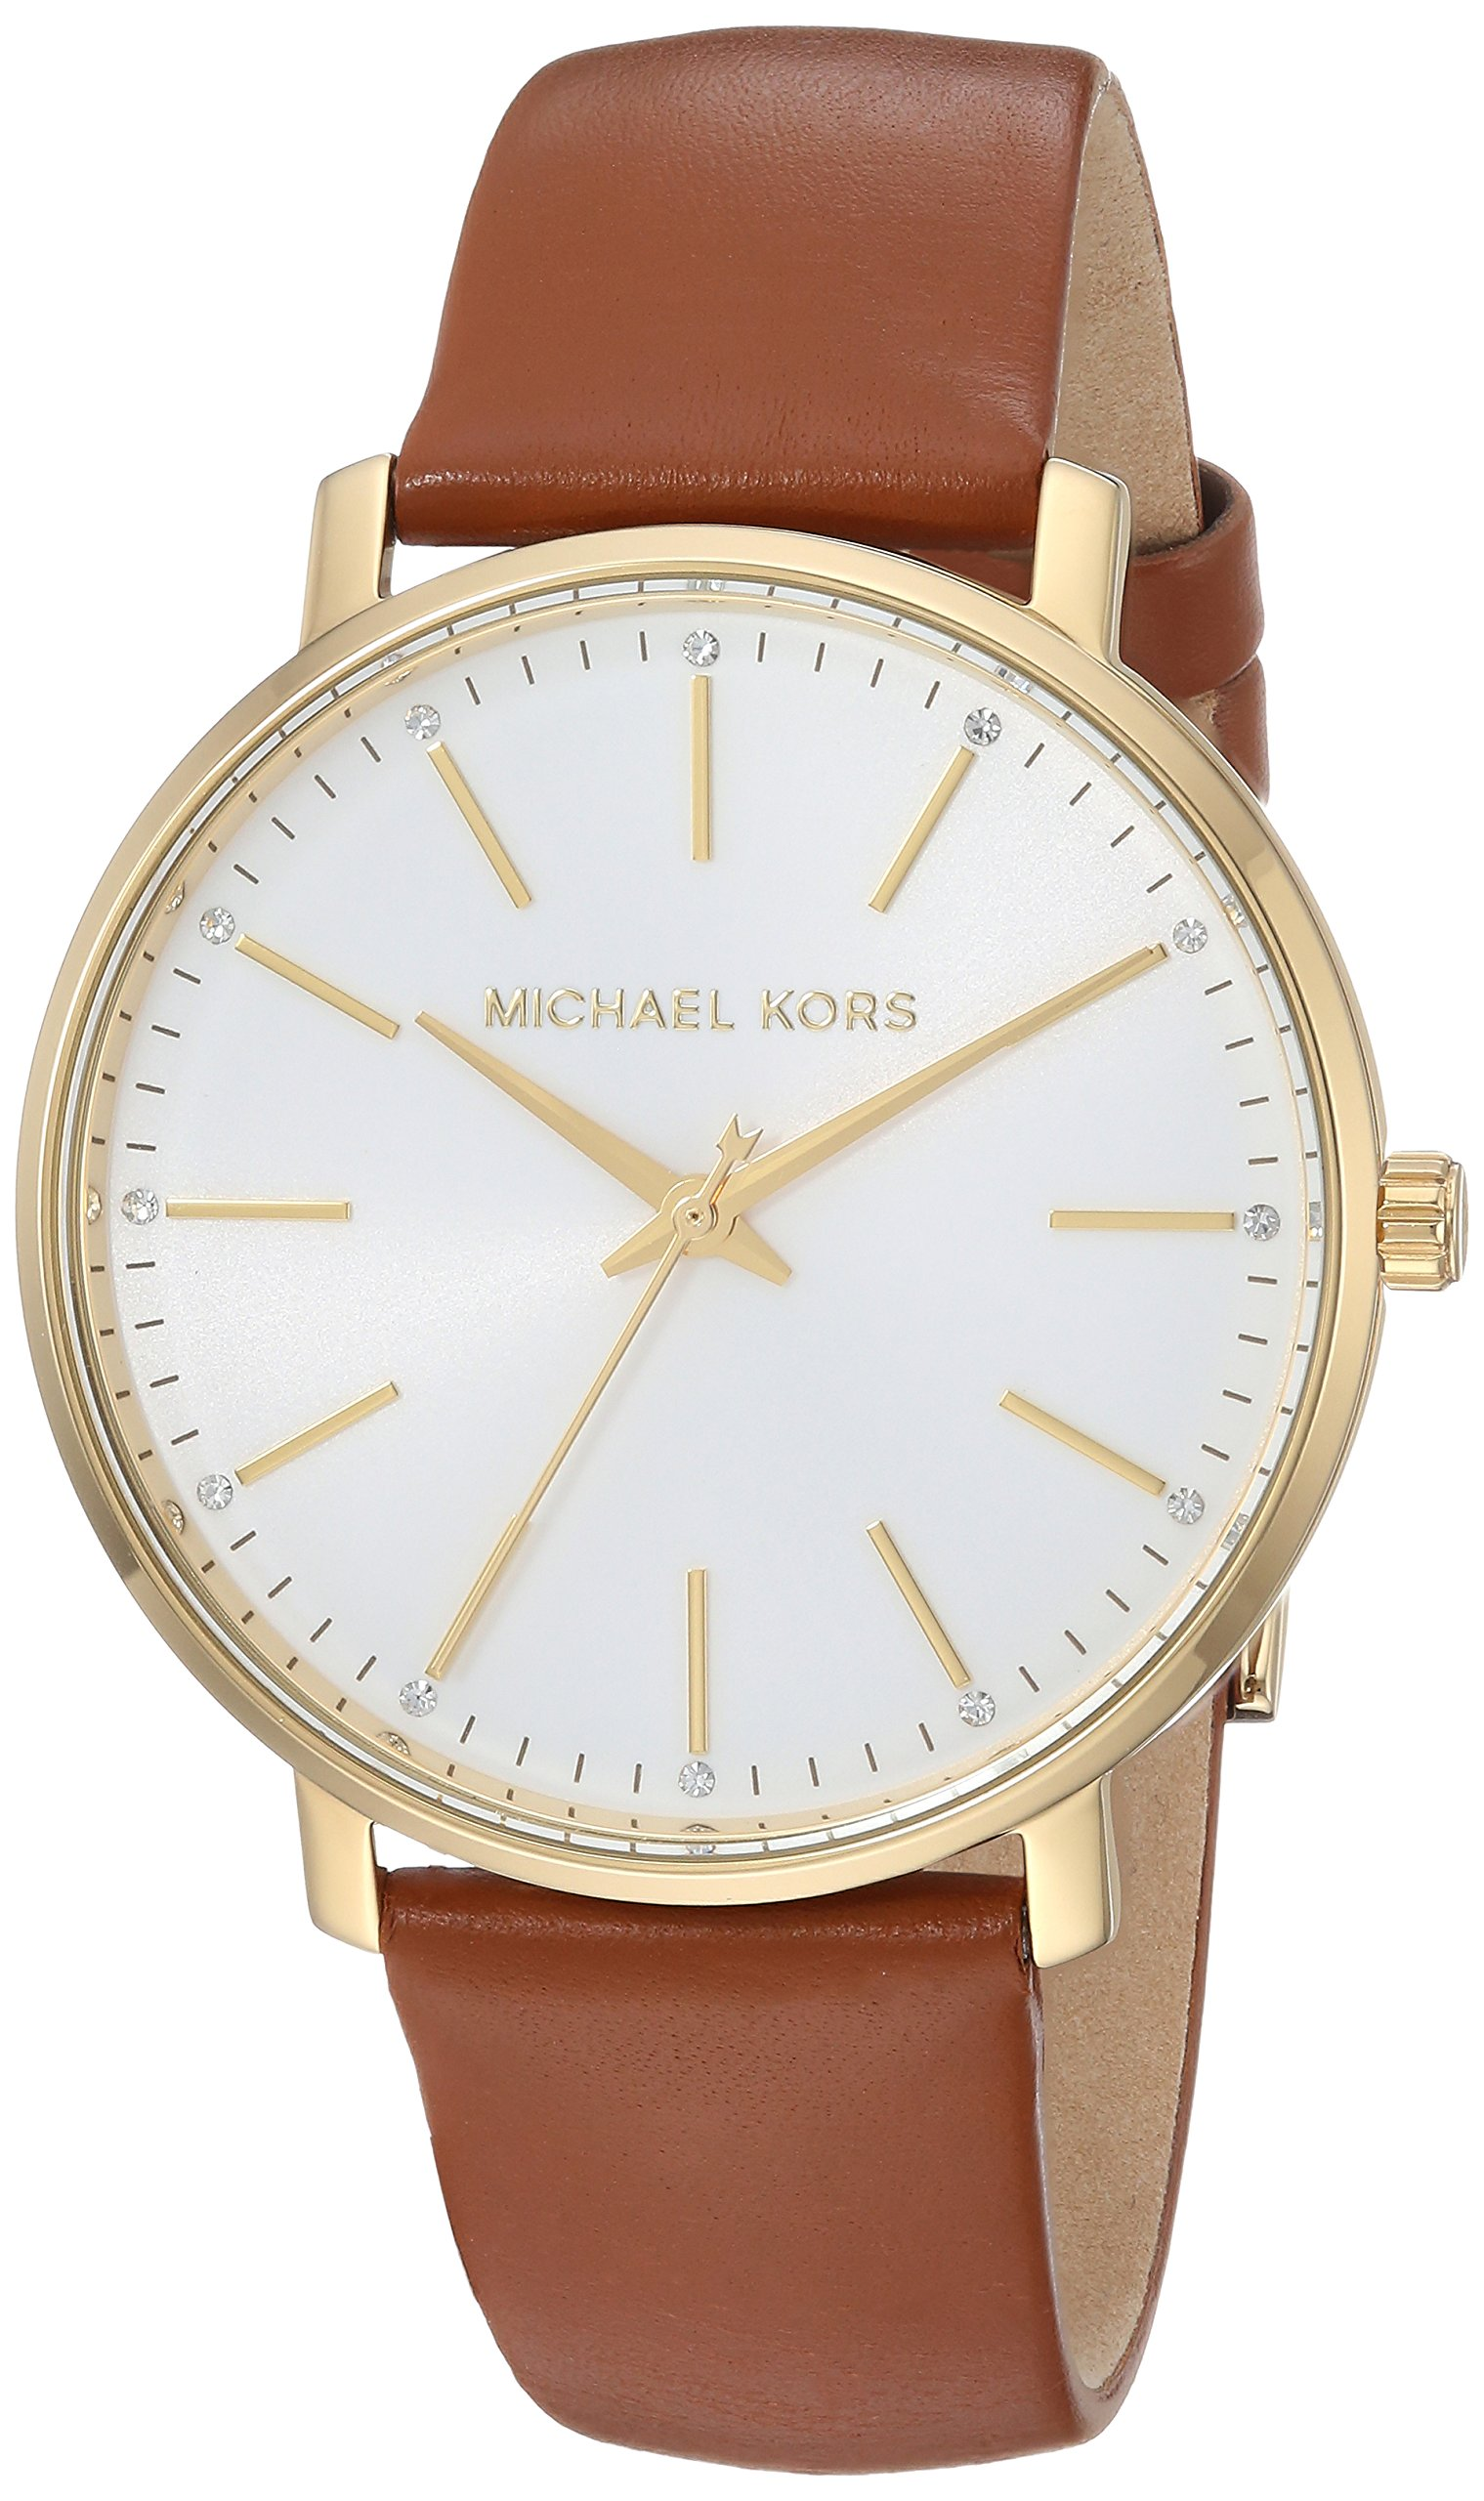 Michael Kors Women's Stainless Steel Quartz Watch with Leather Calfskin Strap, Brown, 18 (Model: MK2740)